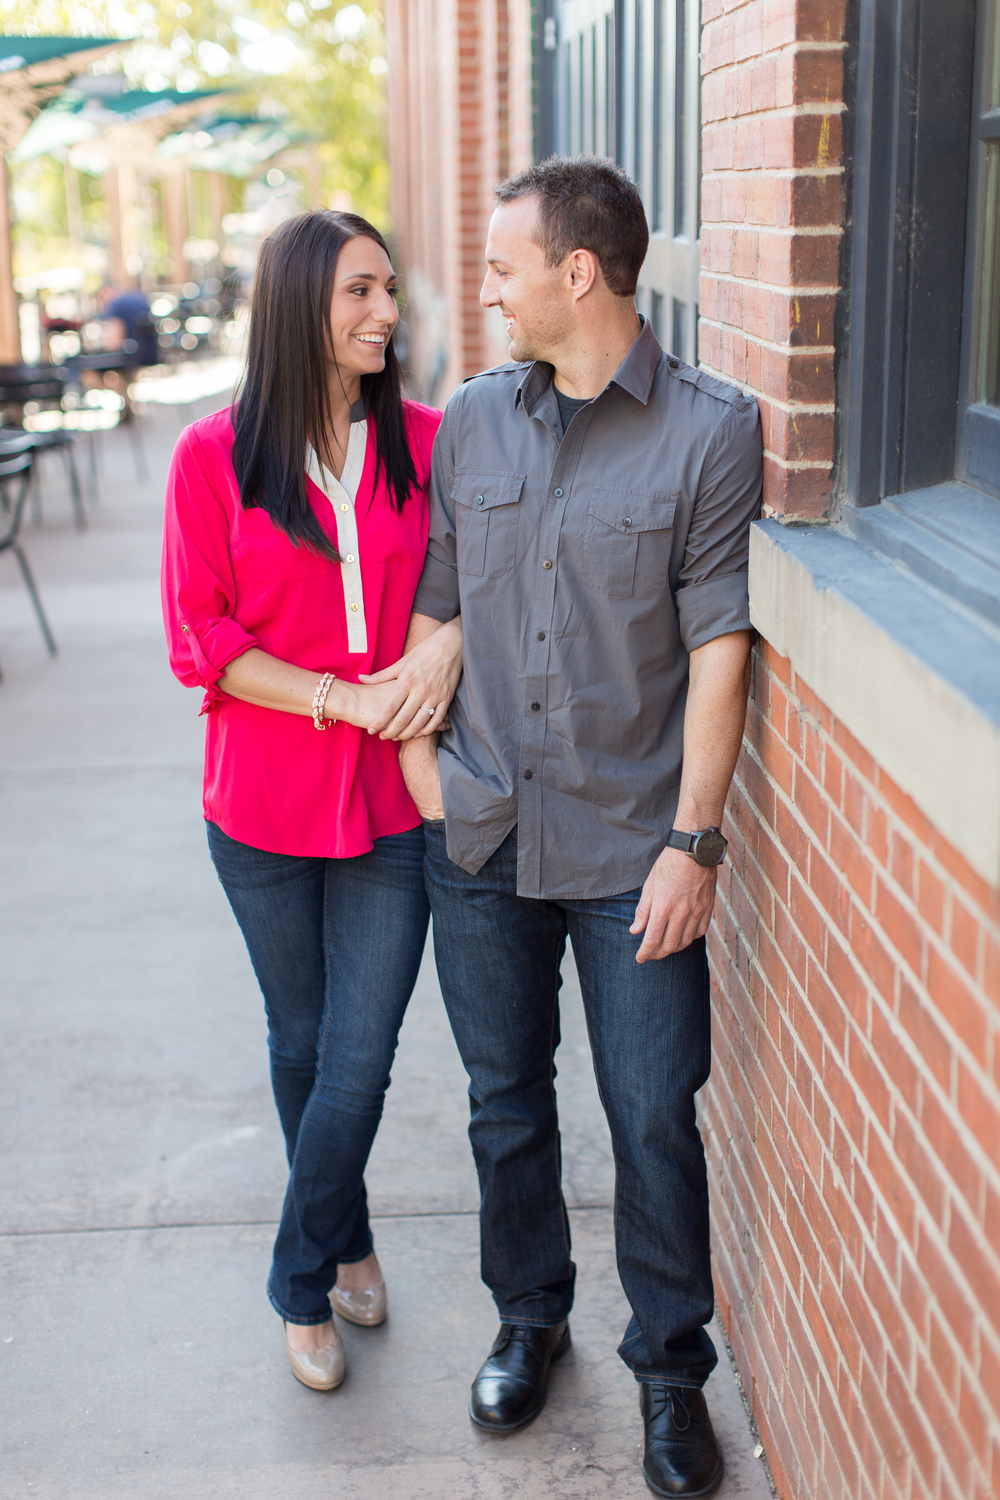 Colorado Engagement Photography by TréCreative (19 of 111).jpg